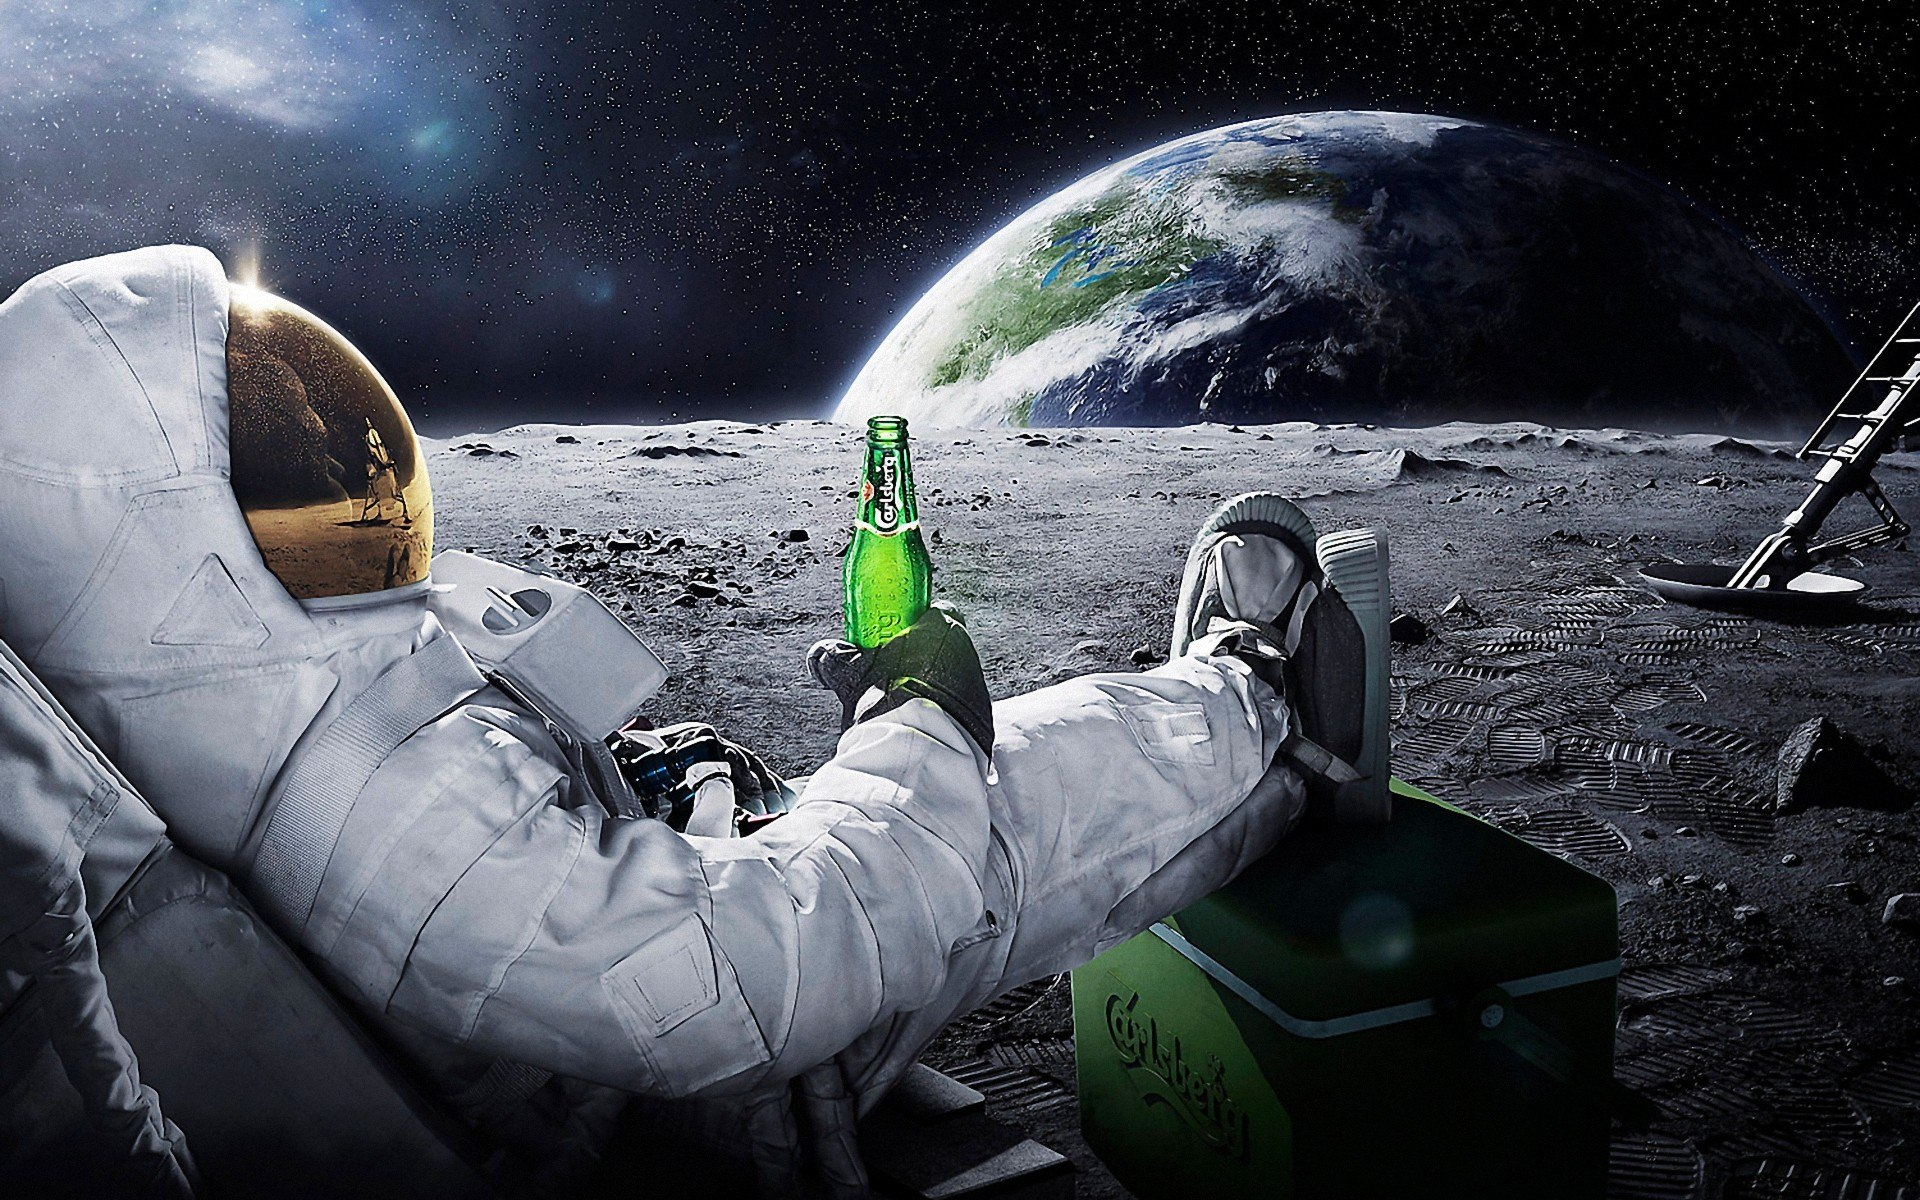 Astronaut chilling on the moon with beer wallpaper 1920x1200 HQ WALLPAPER - (#34676)